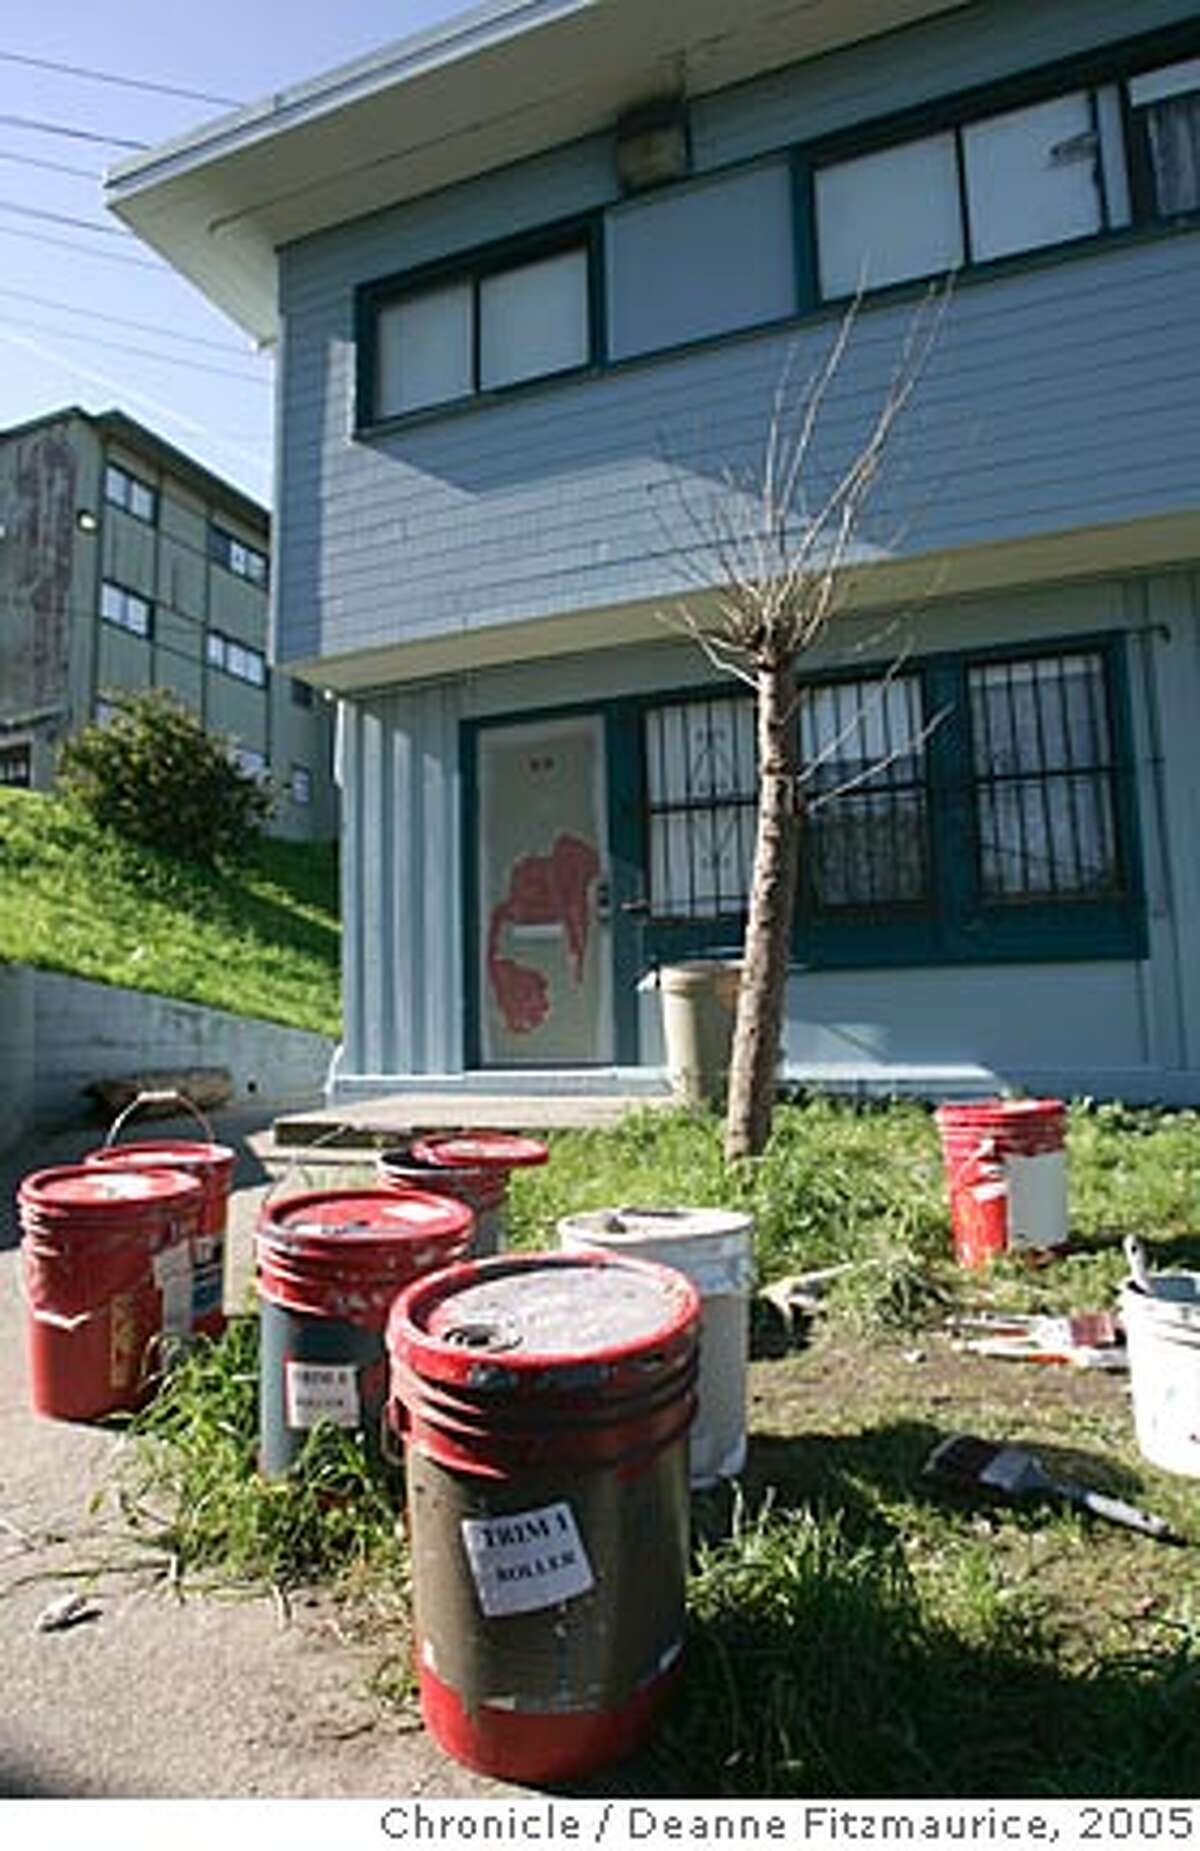 The Hunters View projects have fallen into dispair. They are being repainted residents say, because of lead in the paint. Deanne Fitzmaurice /